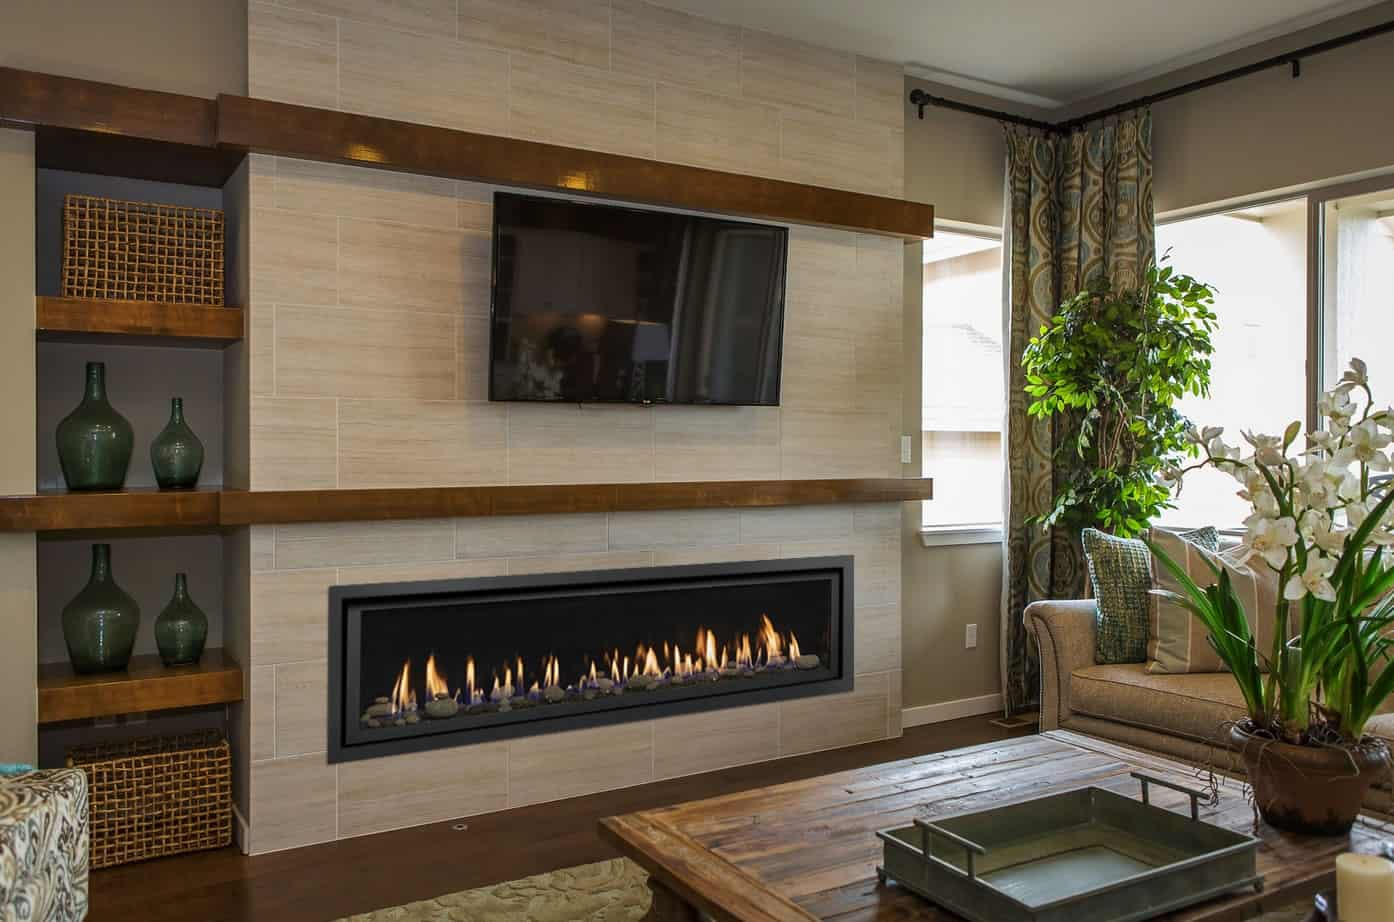 6015 HO GSR2 Gas Fireplace - Best of Houzz 2019 Design 2